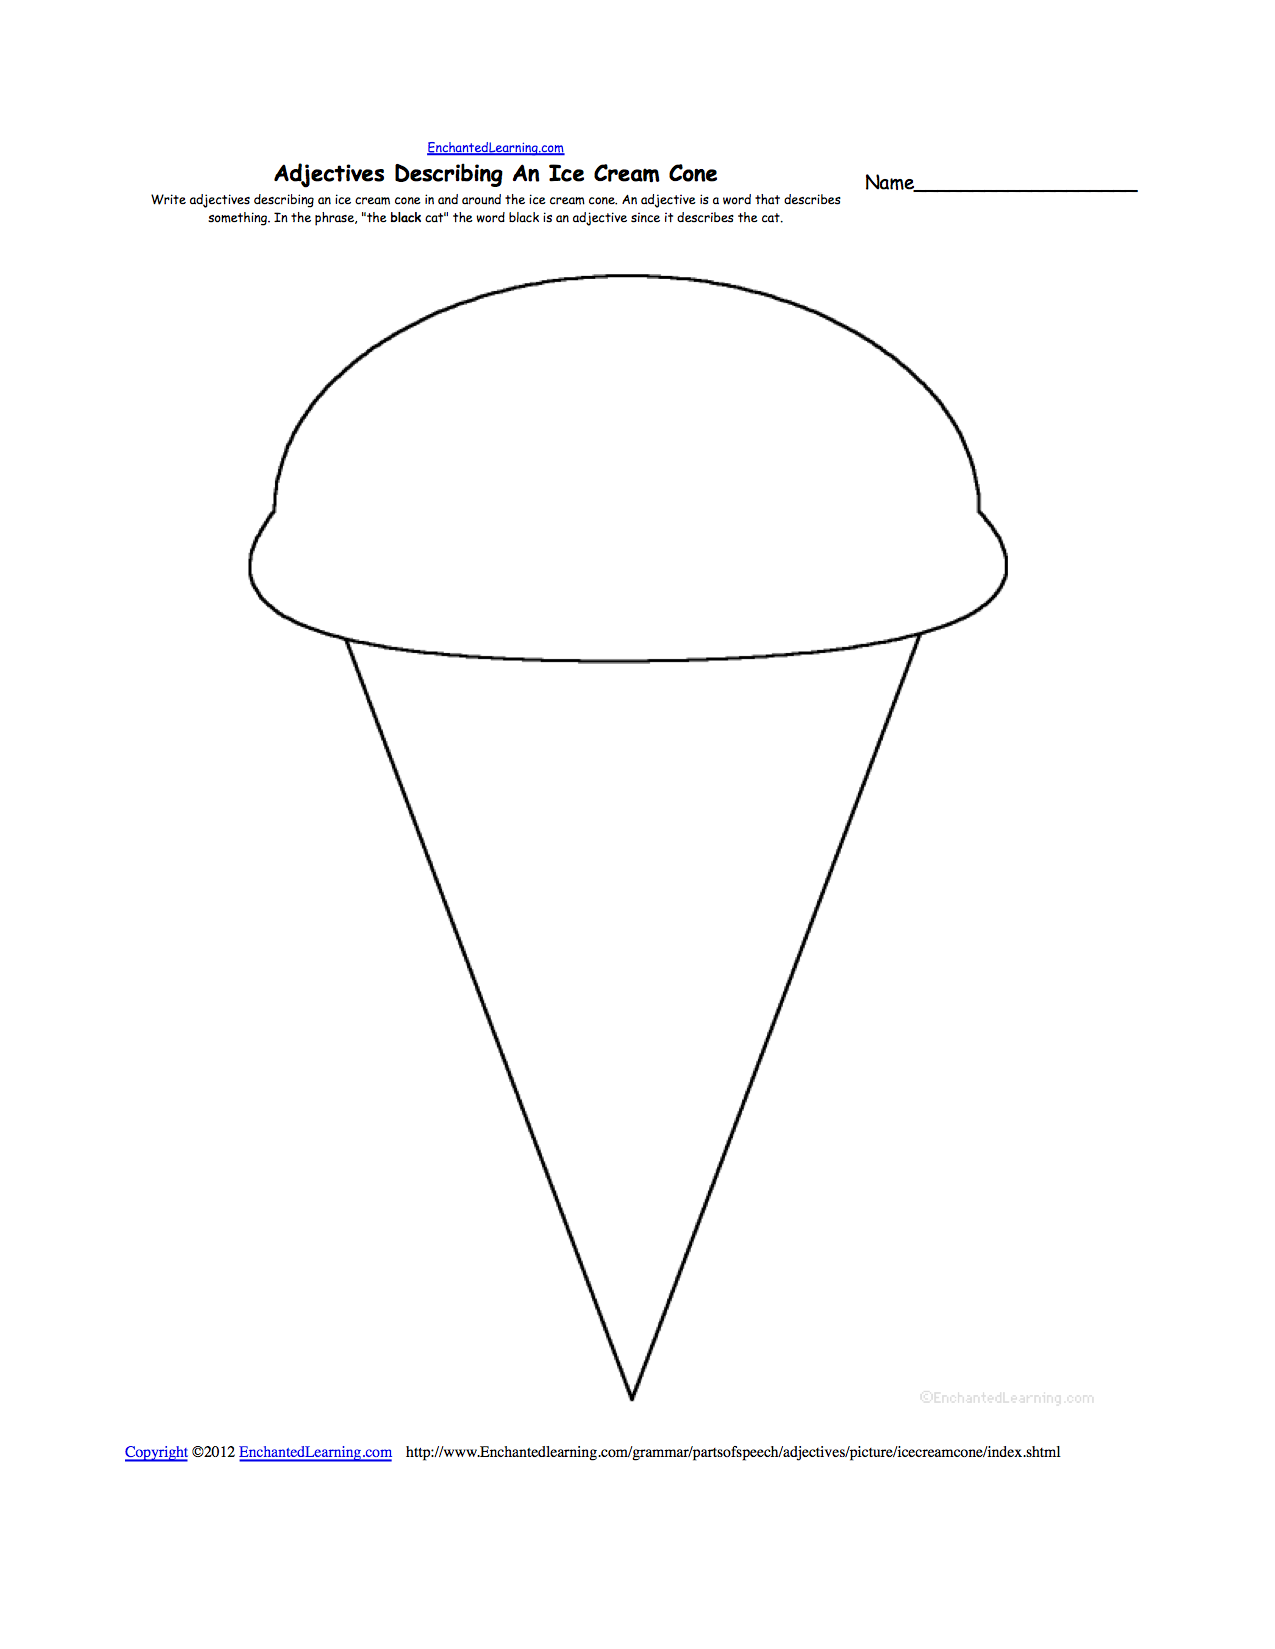 Ice Cream Theme Page at EnchantedLearning.com